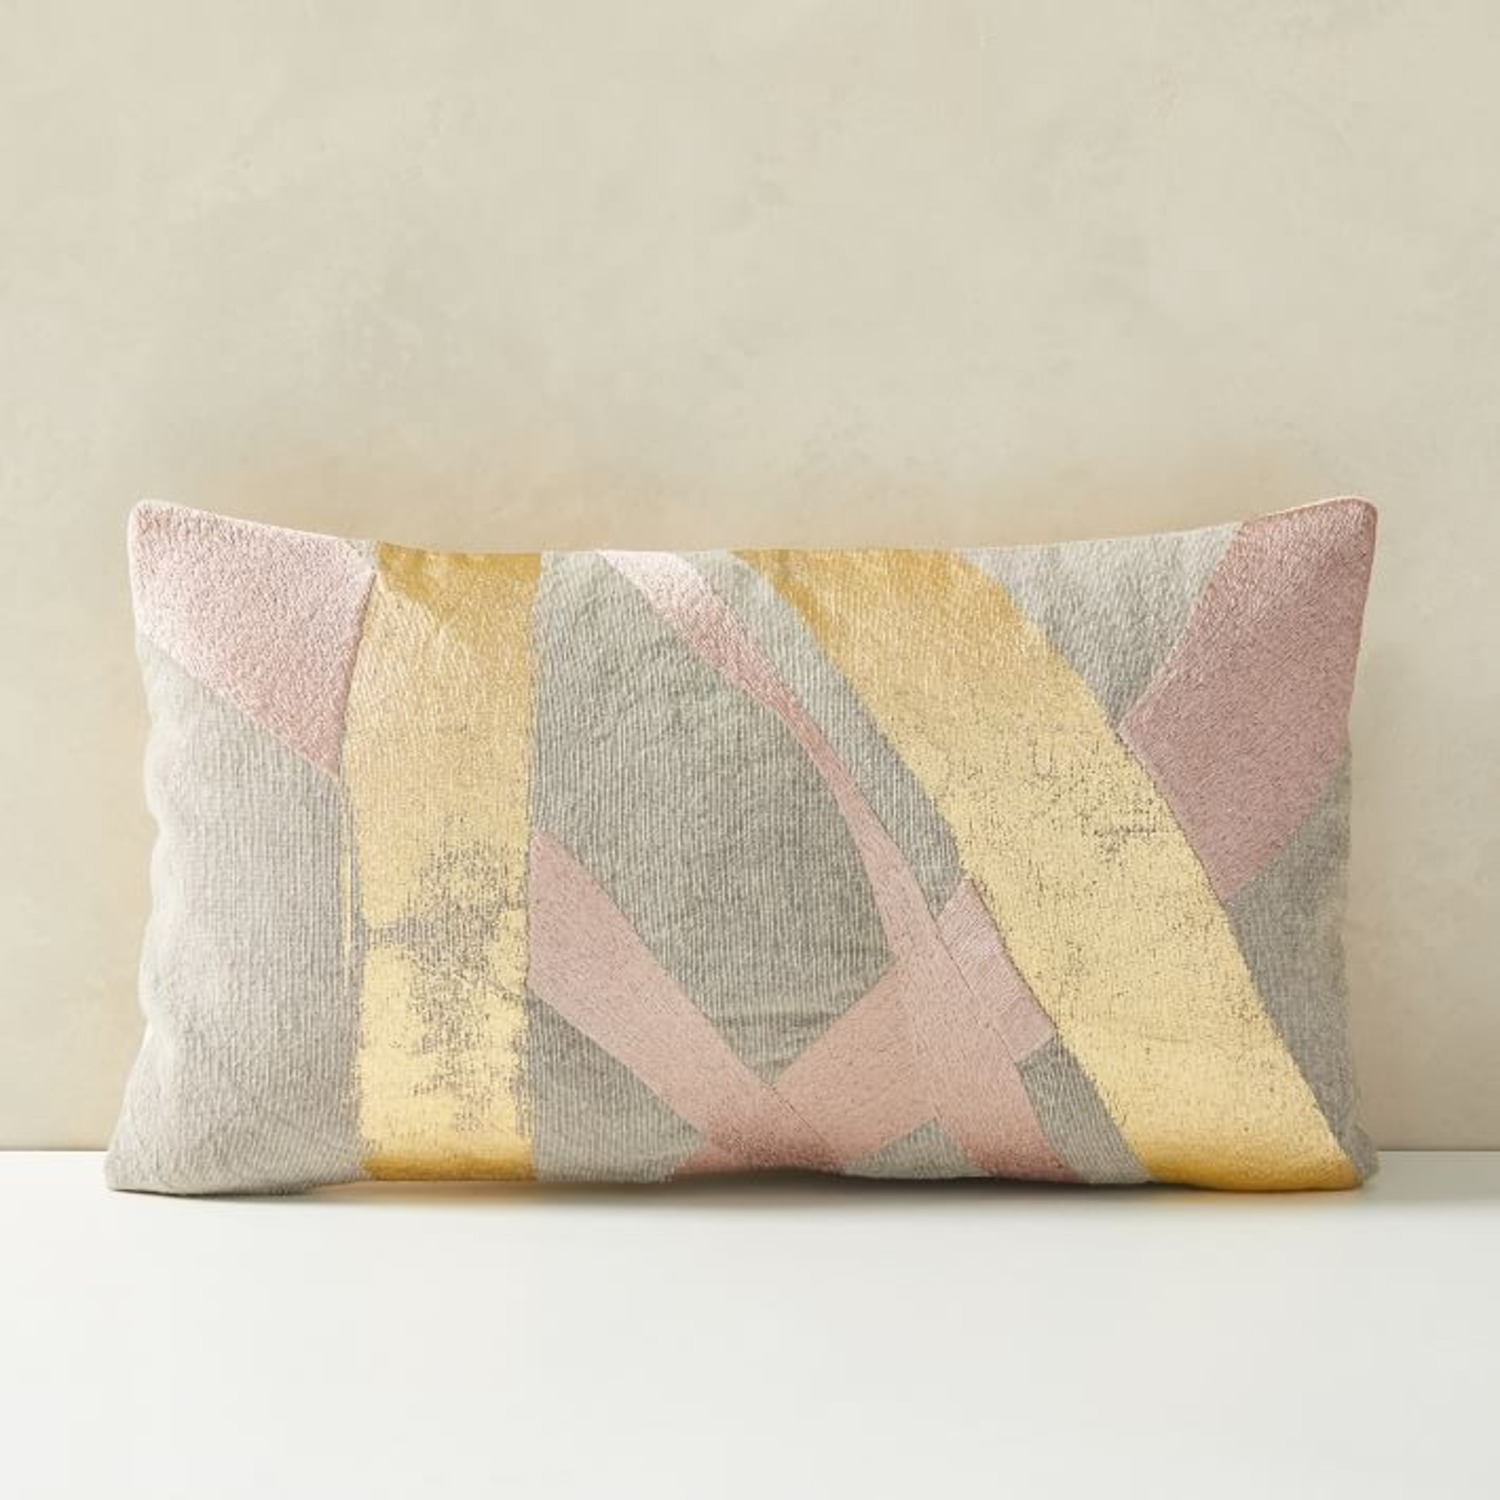 West Elm Embroidered Metallic Ribbon Pillow - image-1